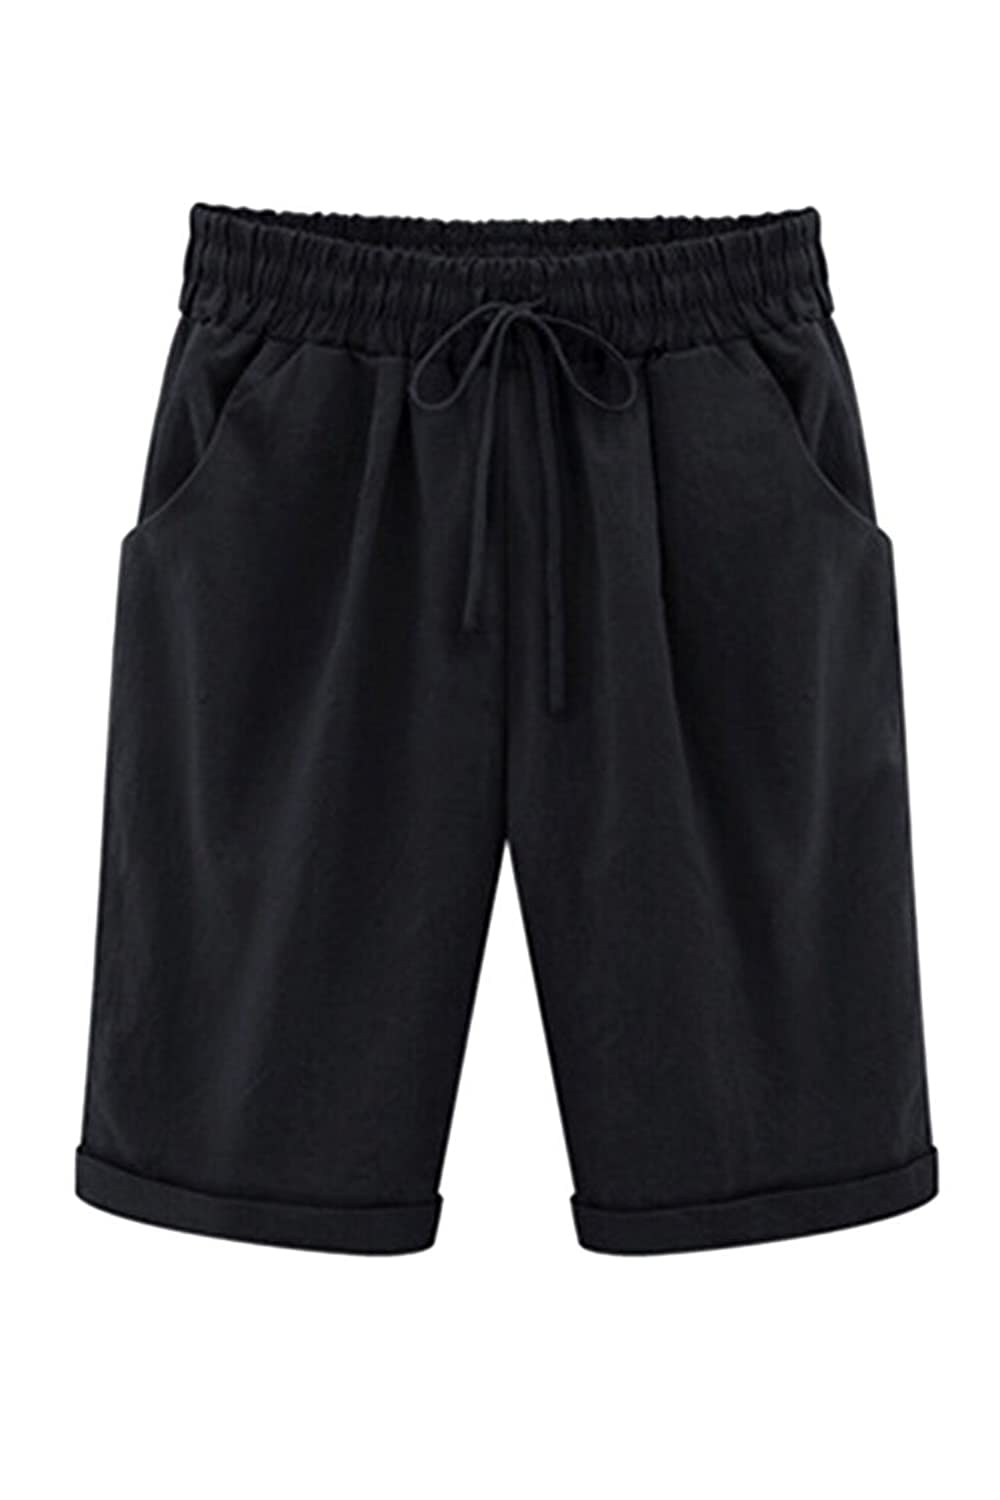 COCOLEGGINGS Womens Drawstring Waist Casual Beach Shorts Regular and Plus Sizes